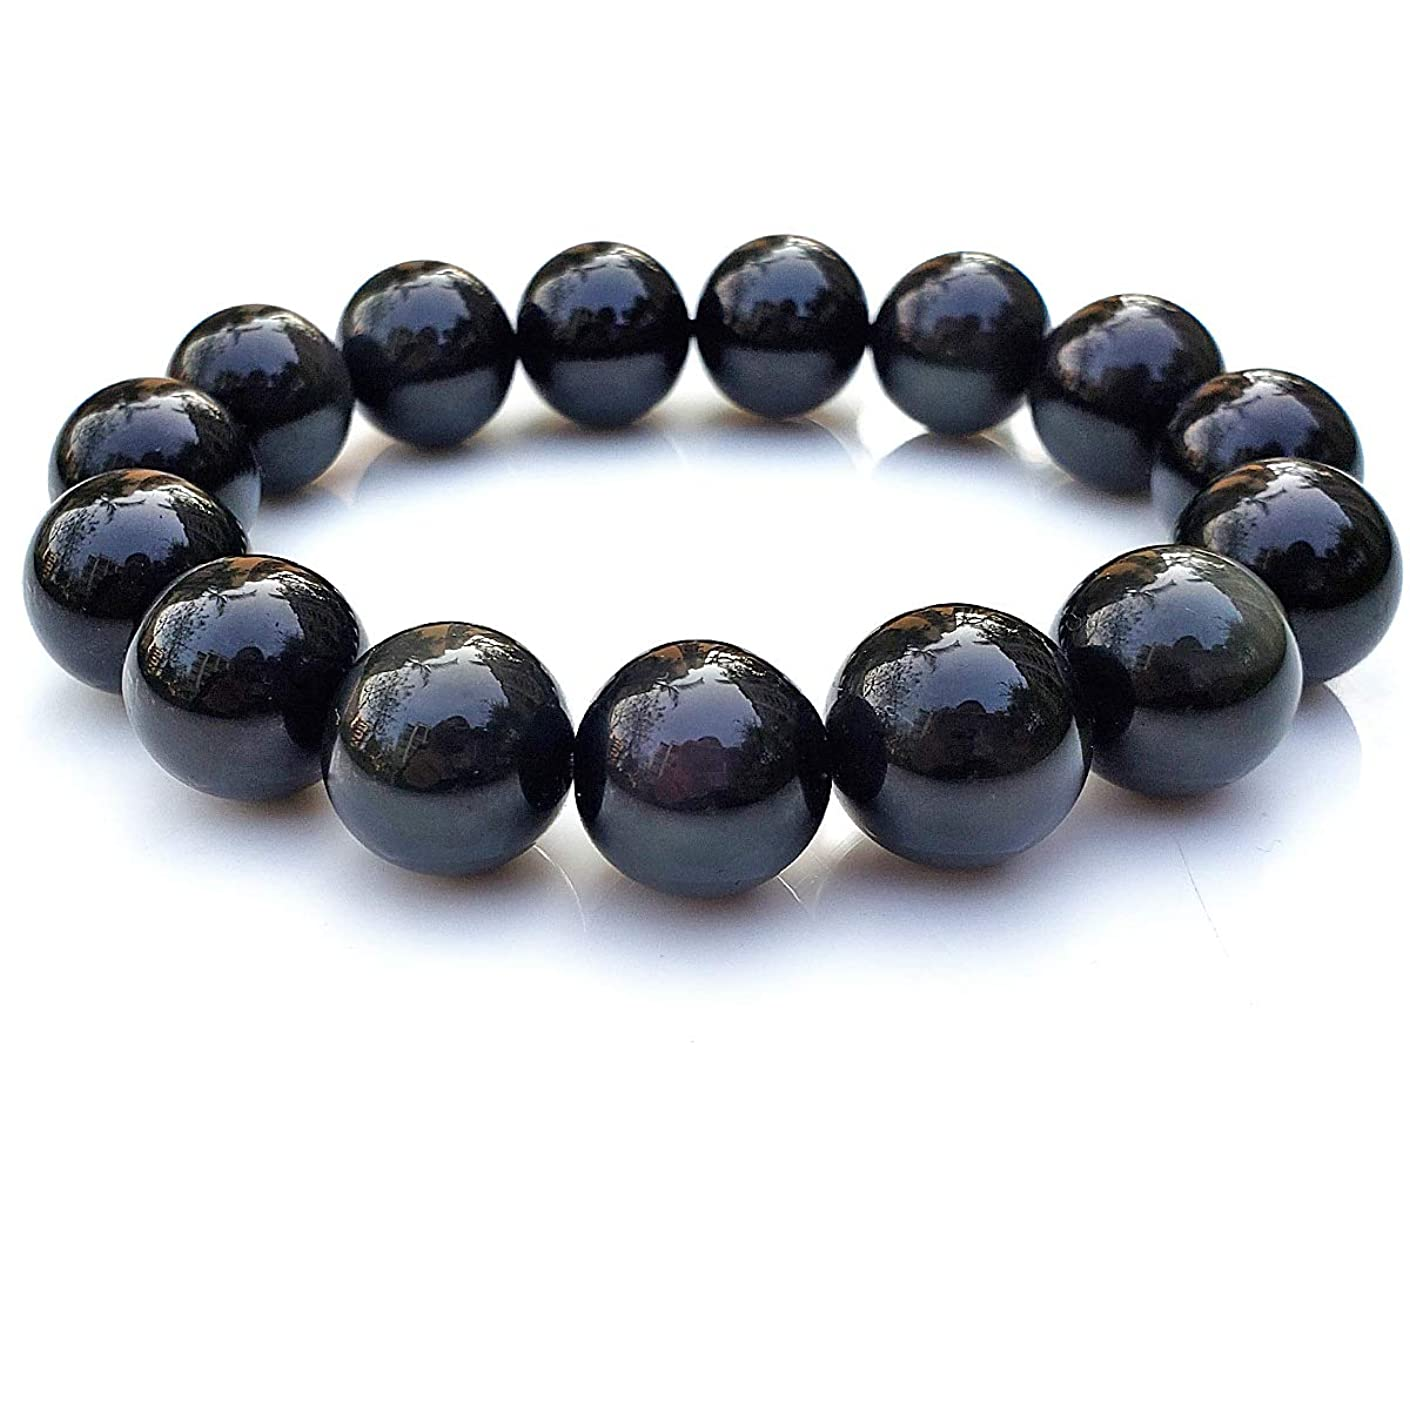 Chengmu 14mm Rainbow Eye Obsidian Stretch Bracelet for Men Natural Round Beads Semi Precious Gemstone for Crystal Elastic Beaded Bracelet 8